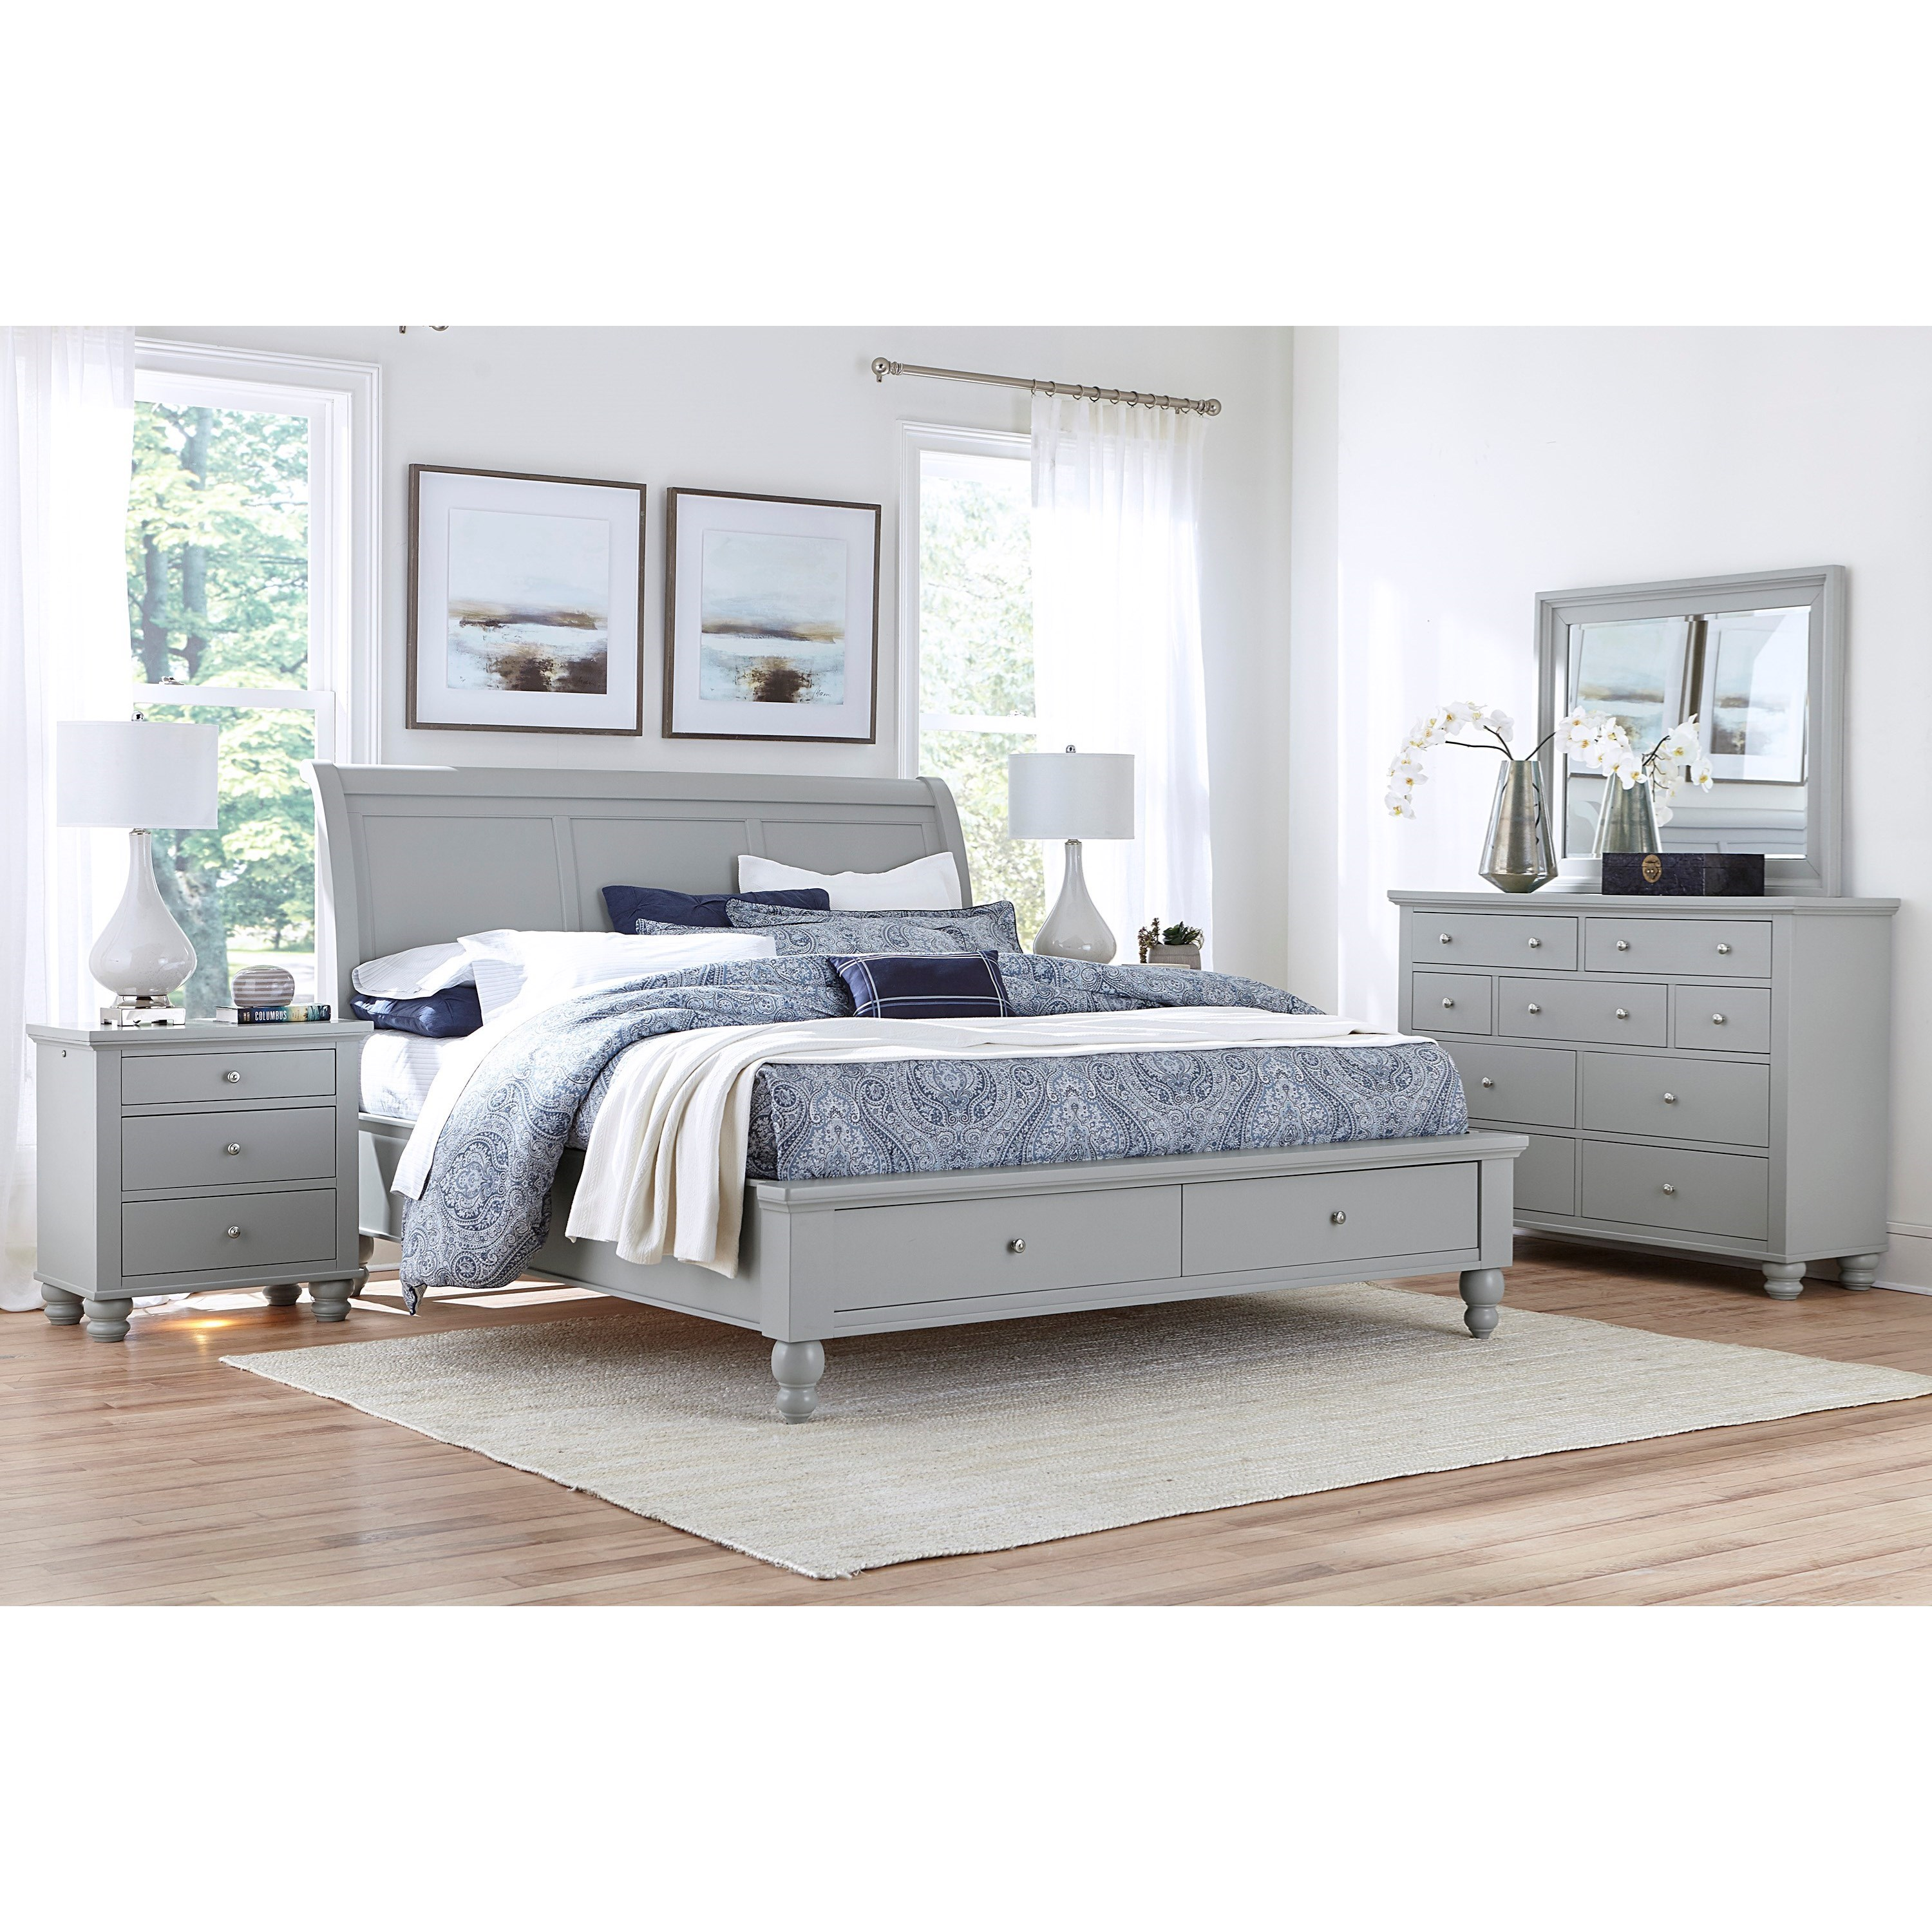 Cambridge Queen Bedroom Group by Aspenhome at Bullard Furniture